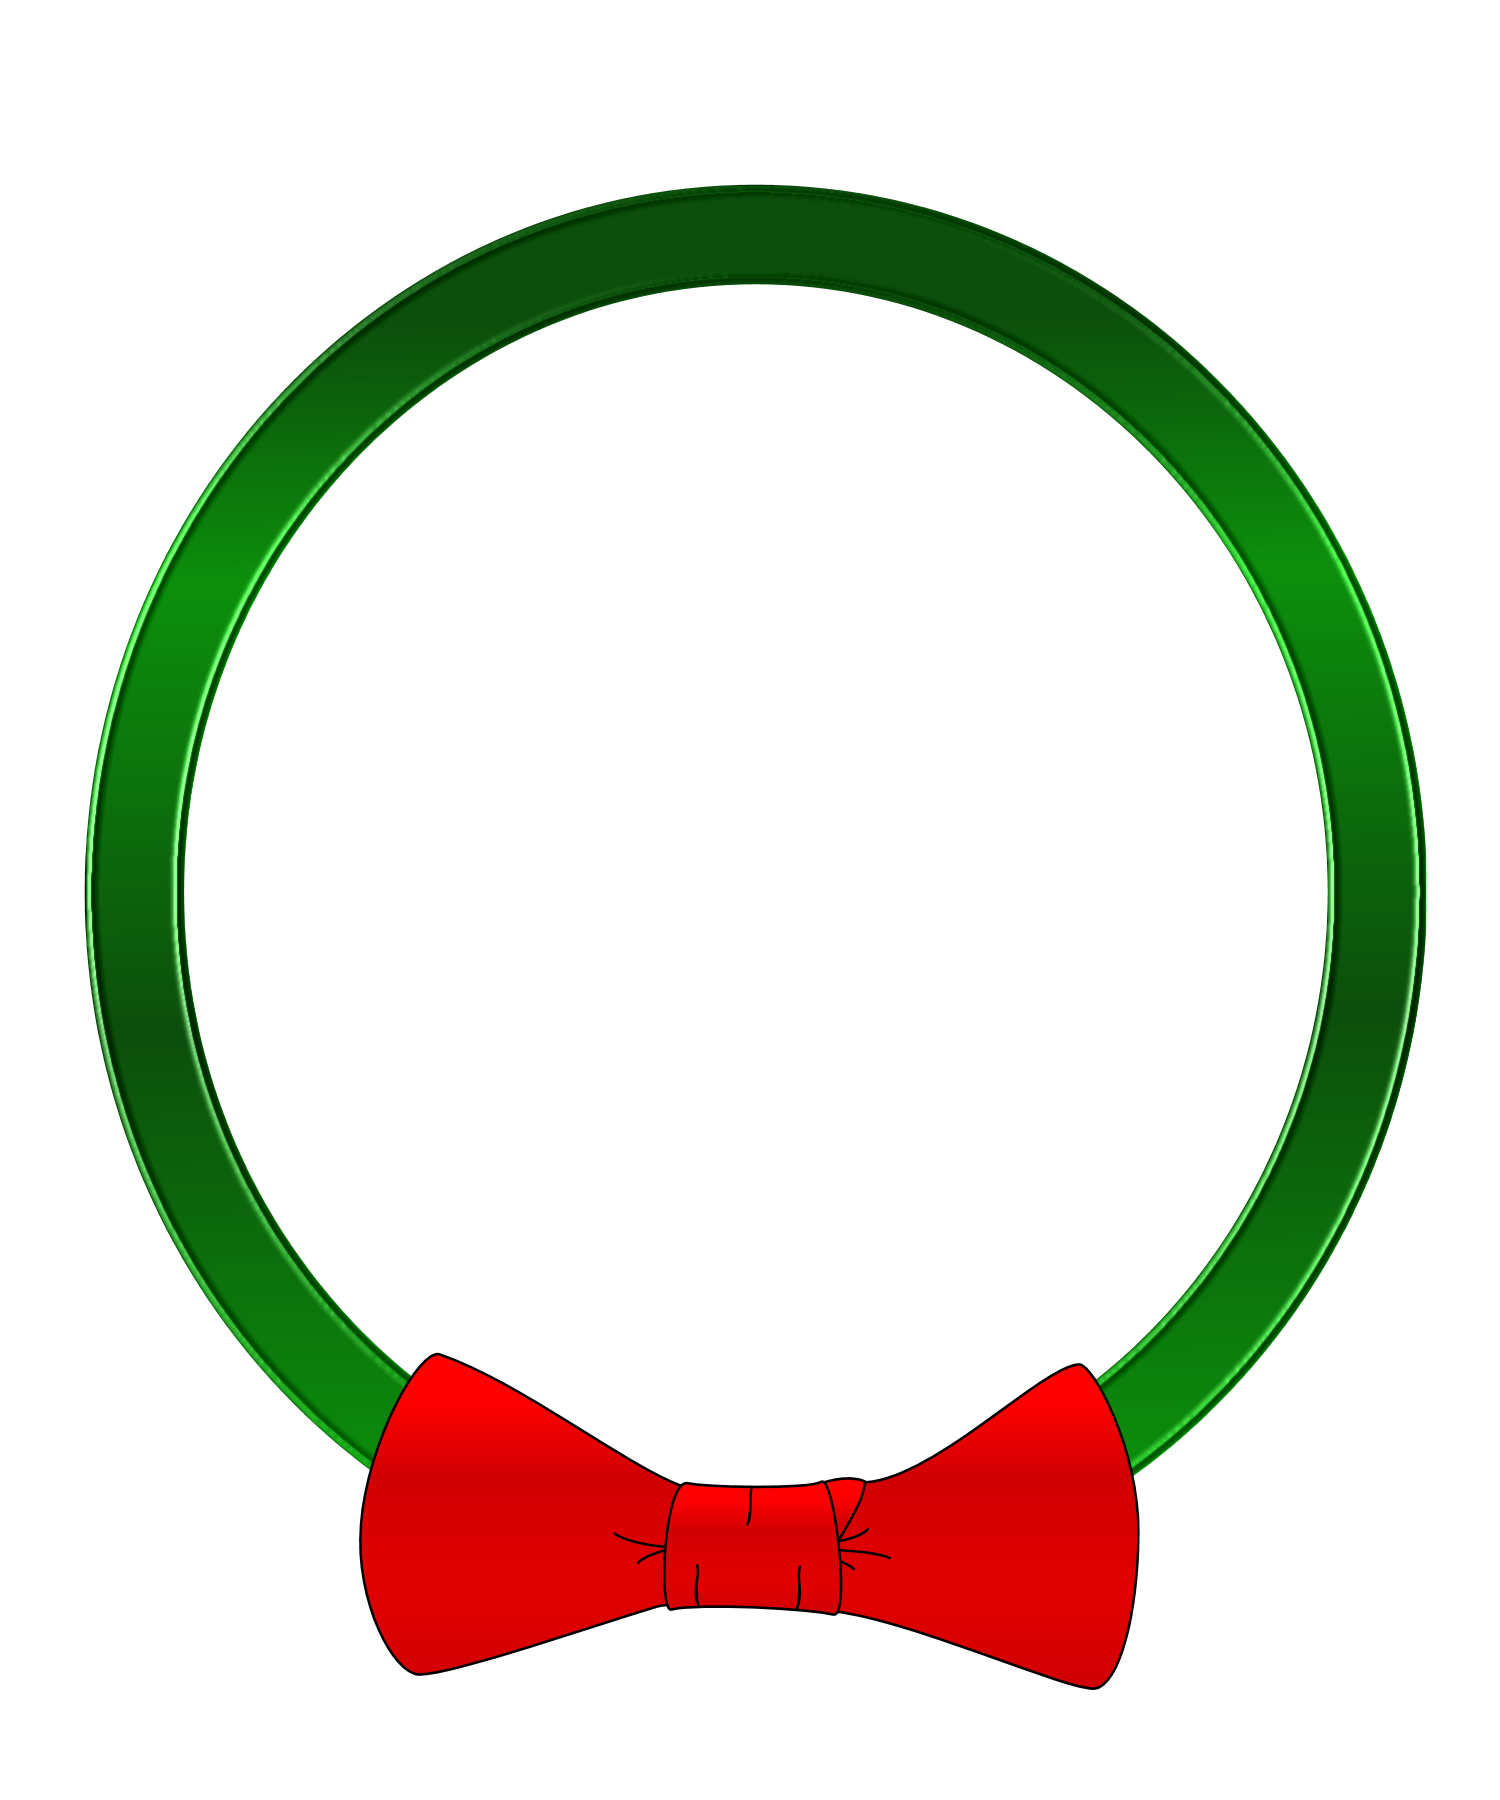 Circle clipart banner. Free christmas cliparts download